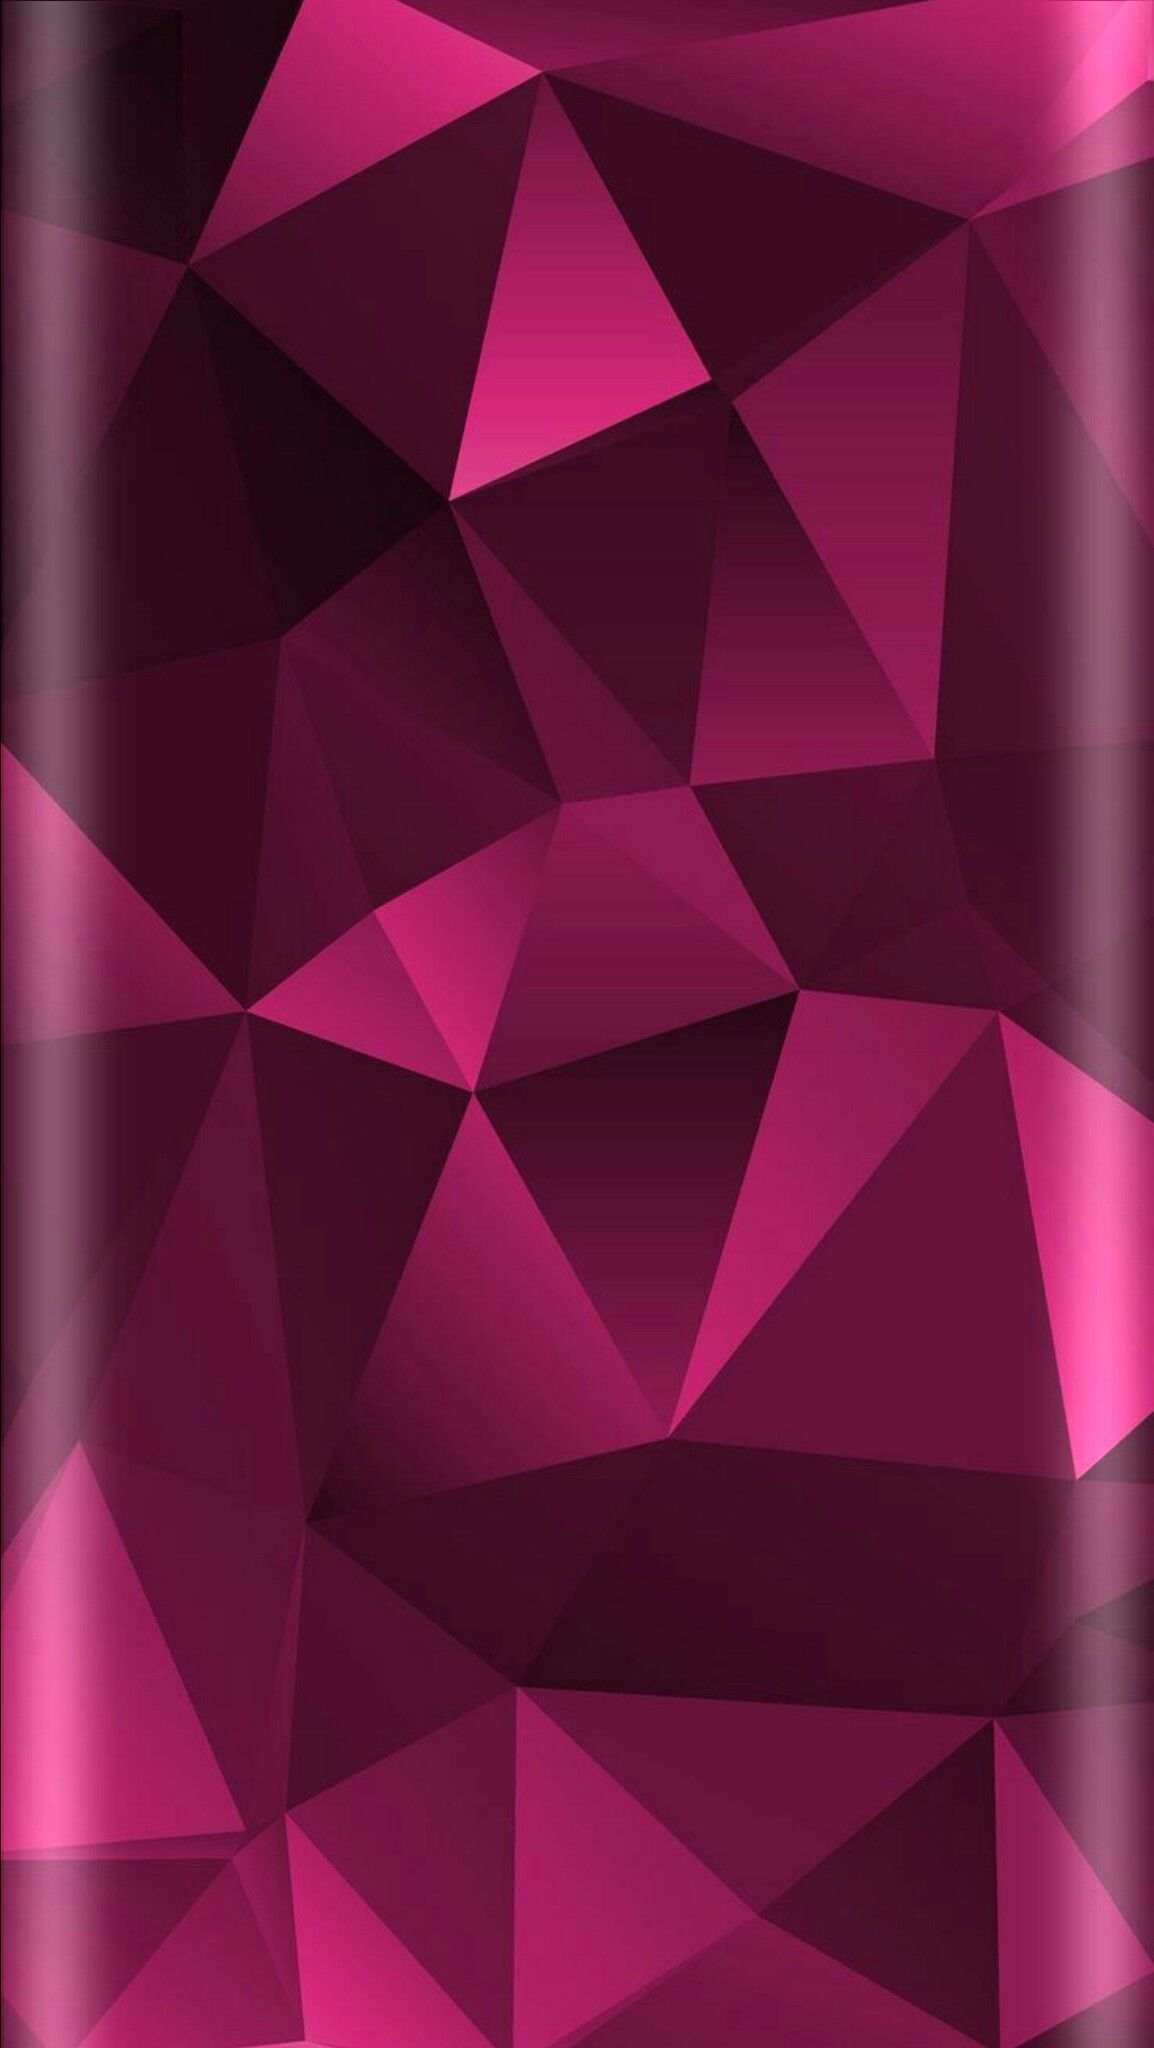 Free Colorful Geometric Wallpaper: Pink Geometric Abstract Wallpaper